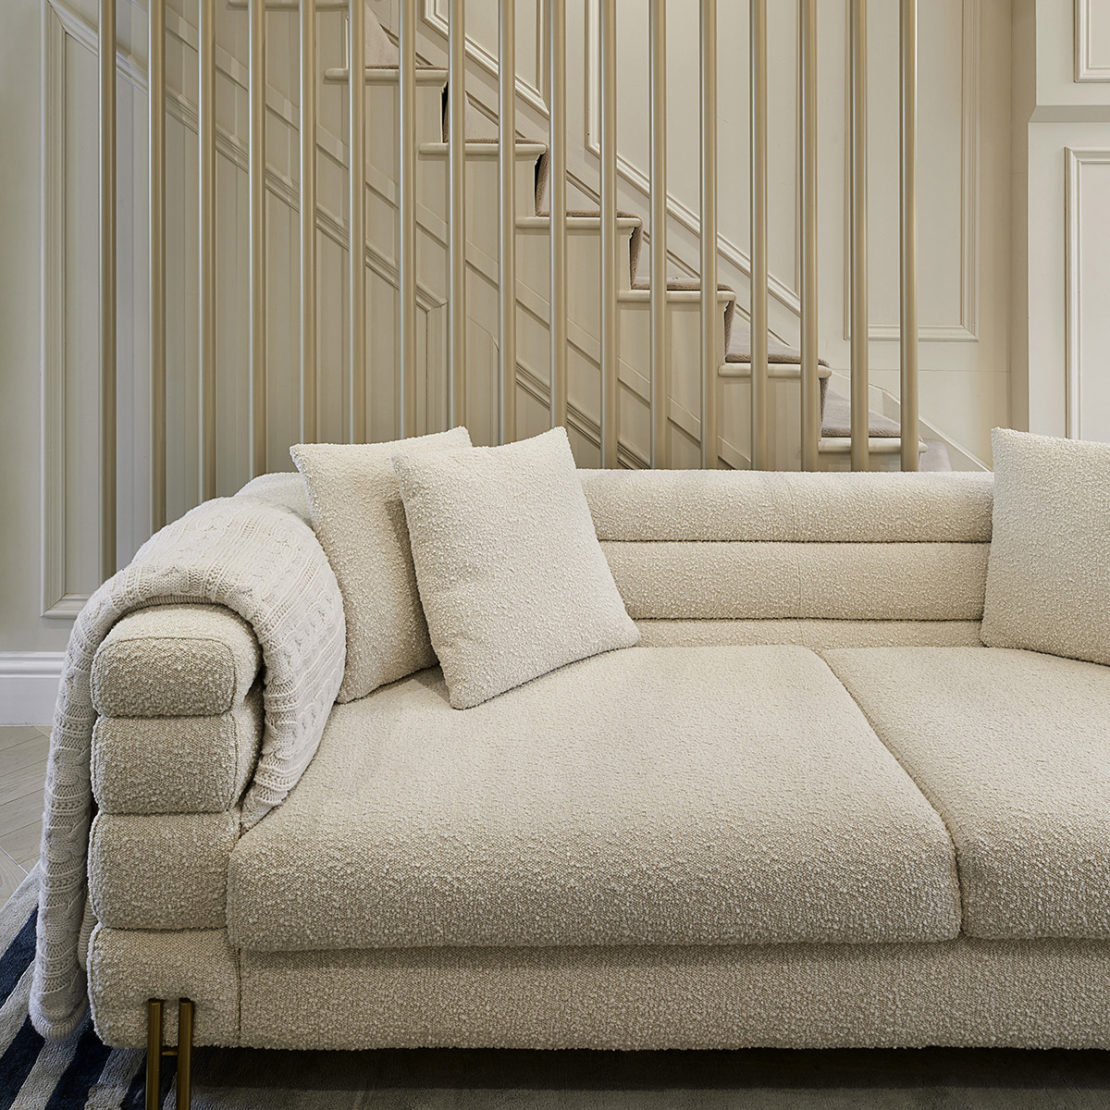 Windsor town house, contemporary staircase, low textured sofa